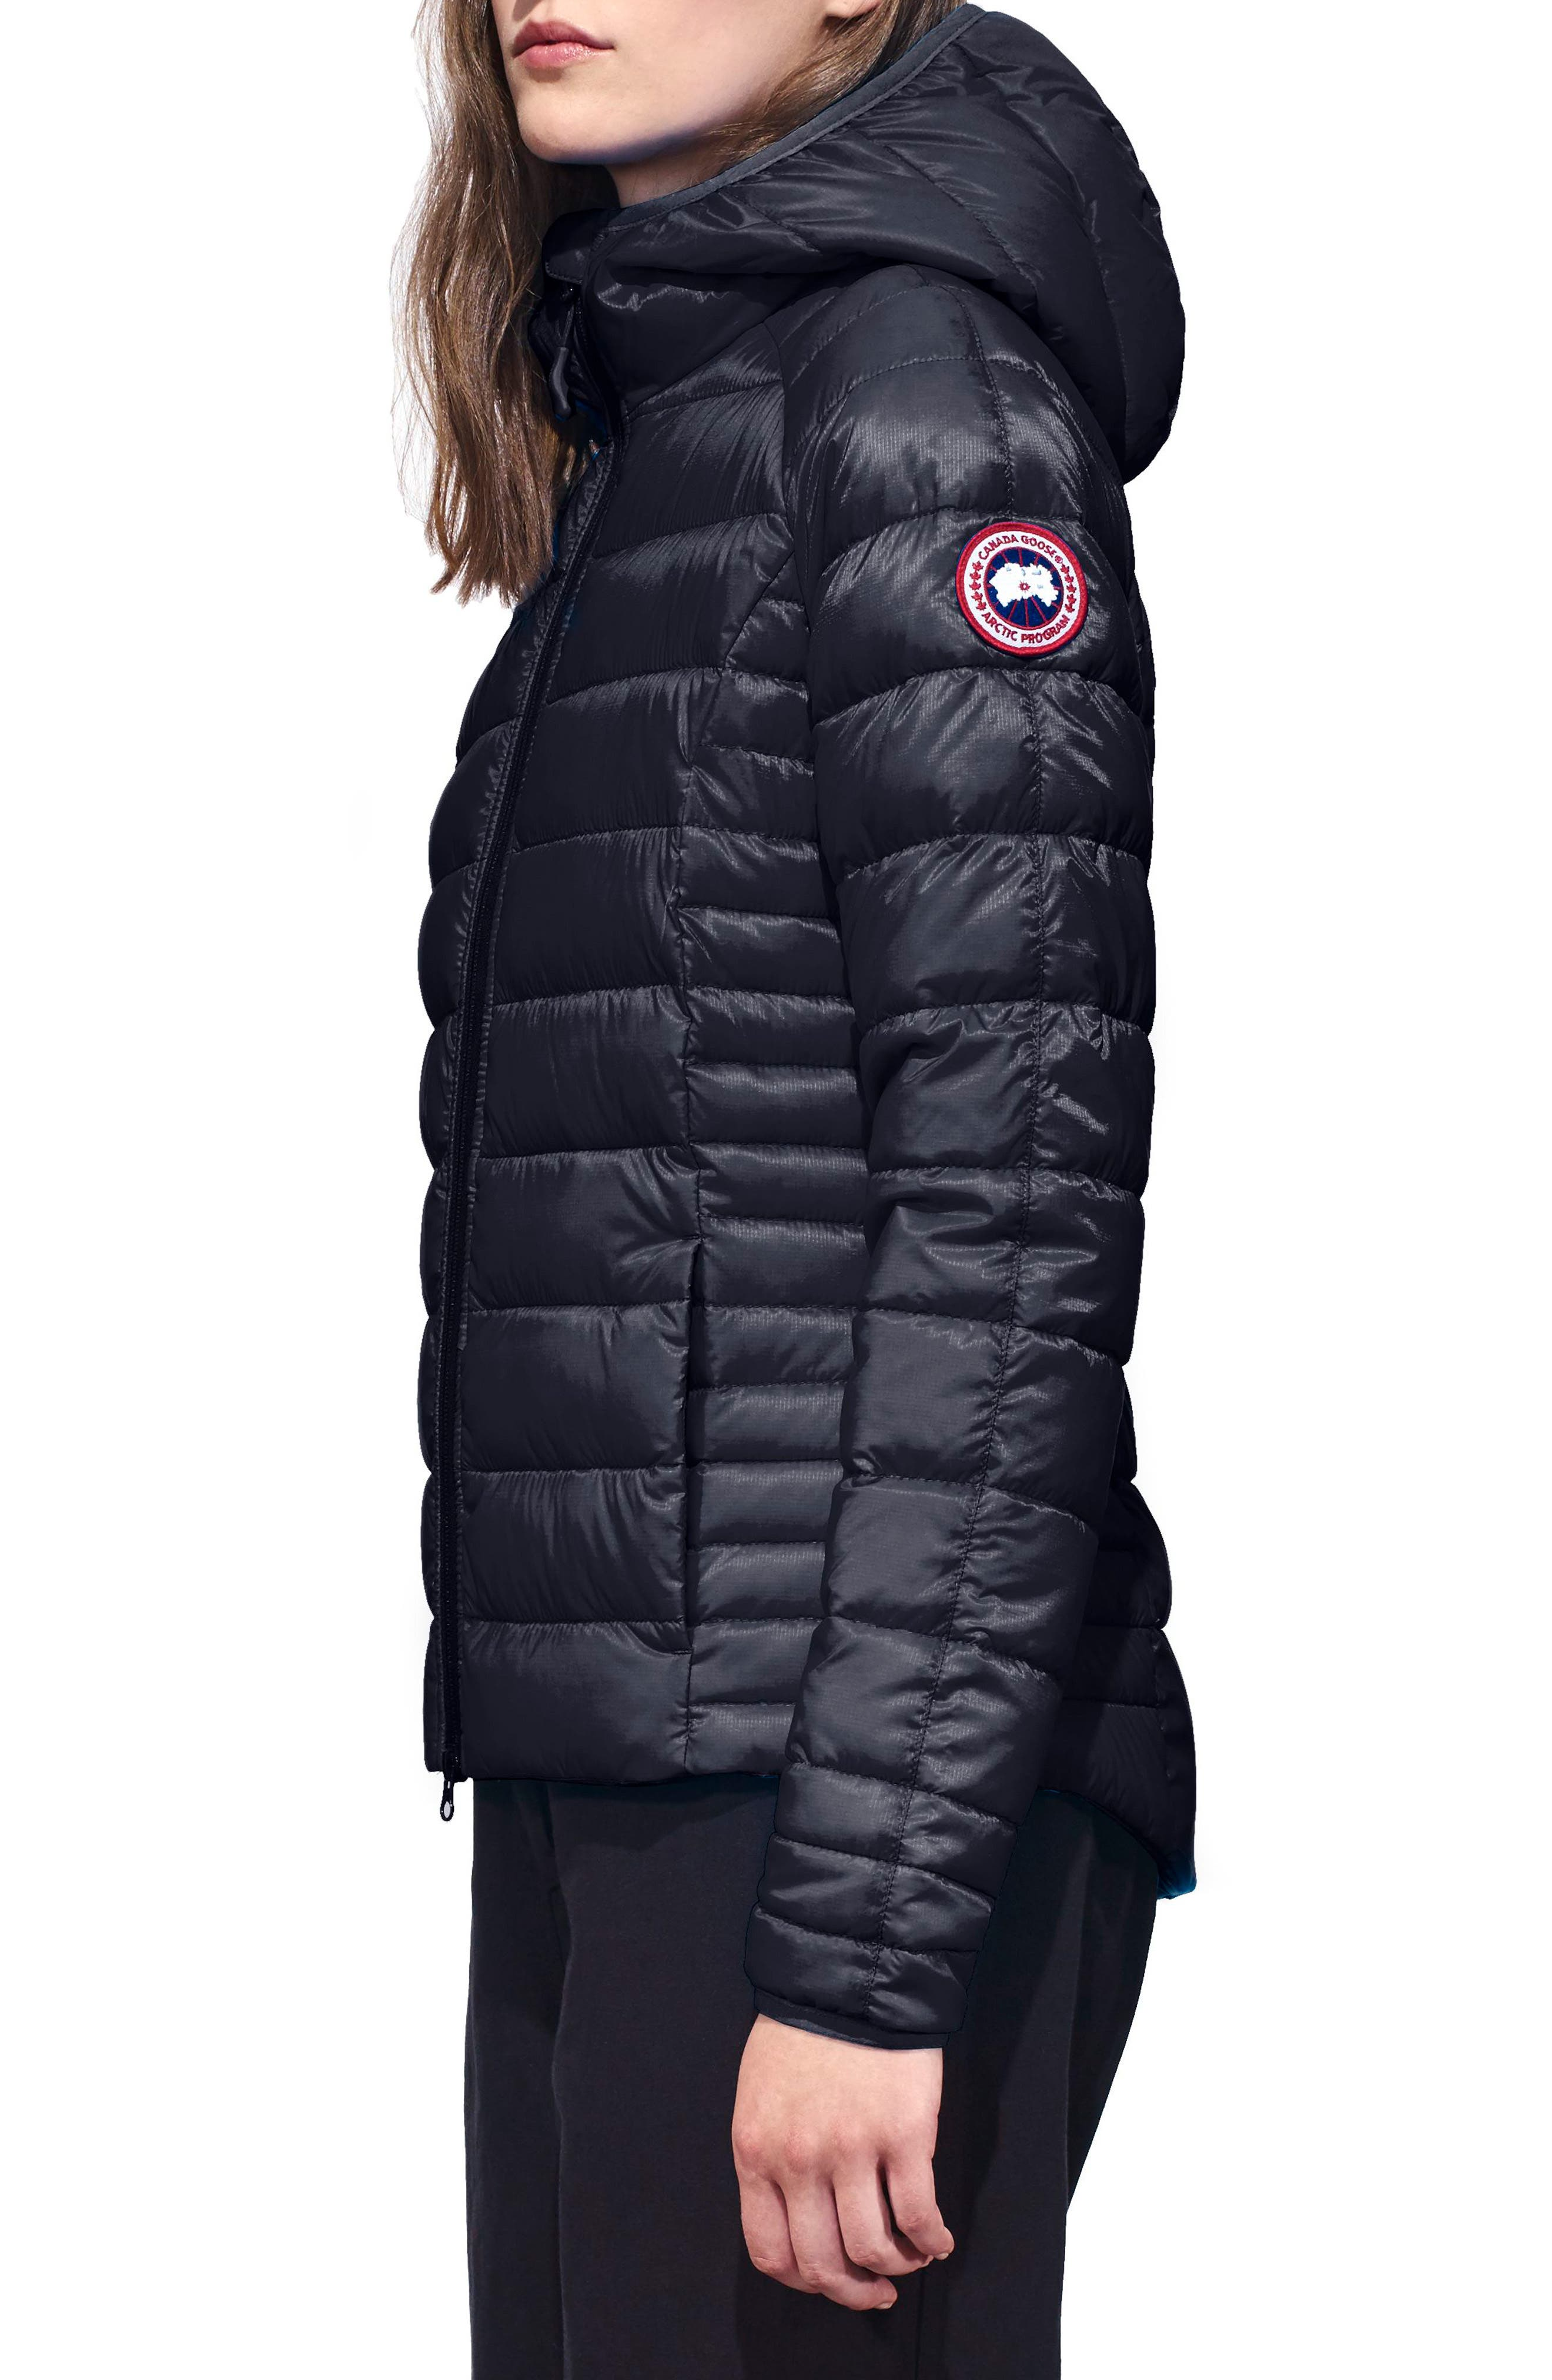 CANADA GOOSE, 'Brookvale' Packable Hooded Quilted Down Jacket, Alternate thumbnail 4, color, ADMIRAL BLUE/ BLACK